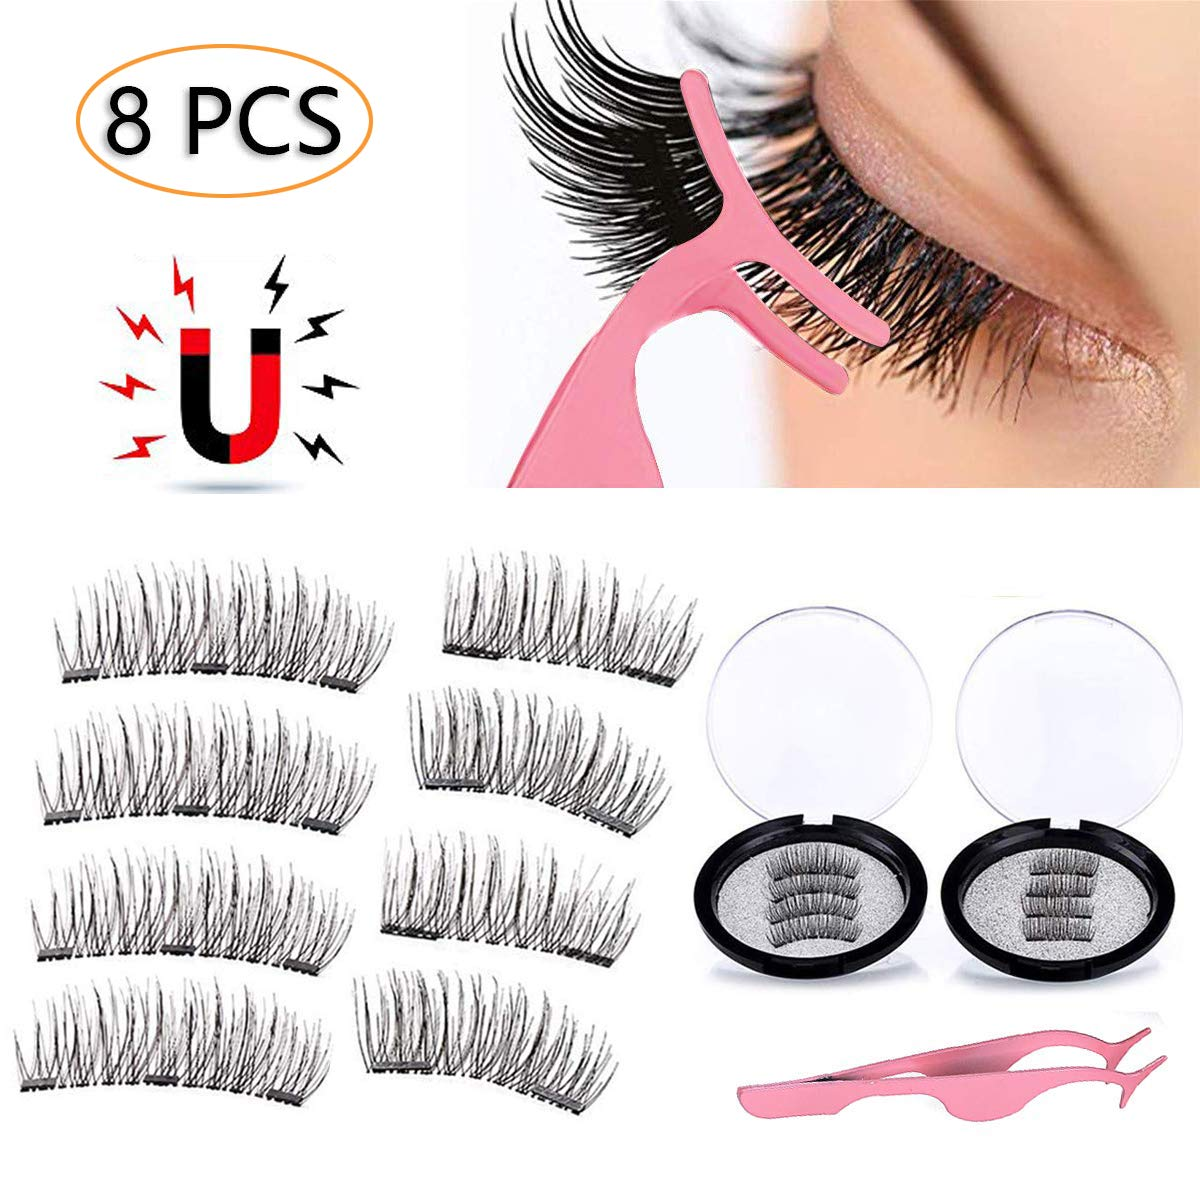 f21bec2640b 3D Magnetic Eyelashes Natural Full Eye Magnetic Lashes Ultra Thin Reusable  & Handmade 3 Magnet Eyelashes